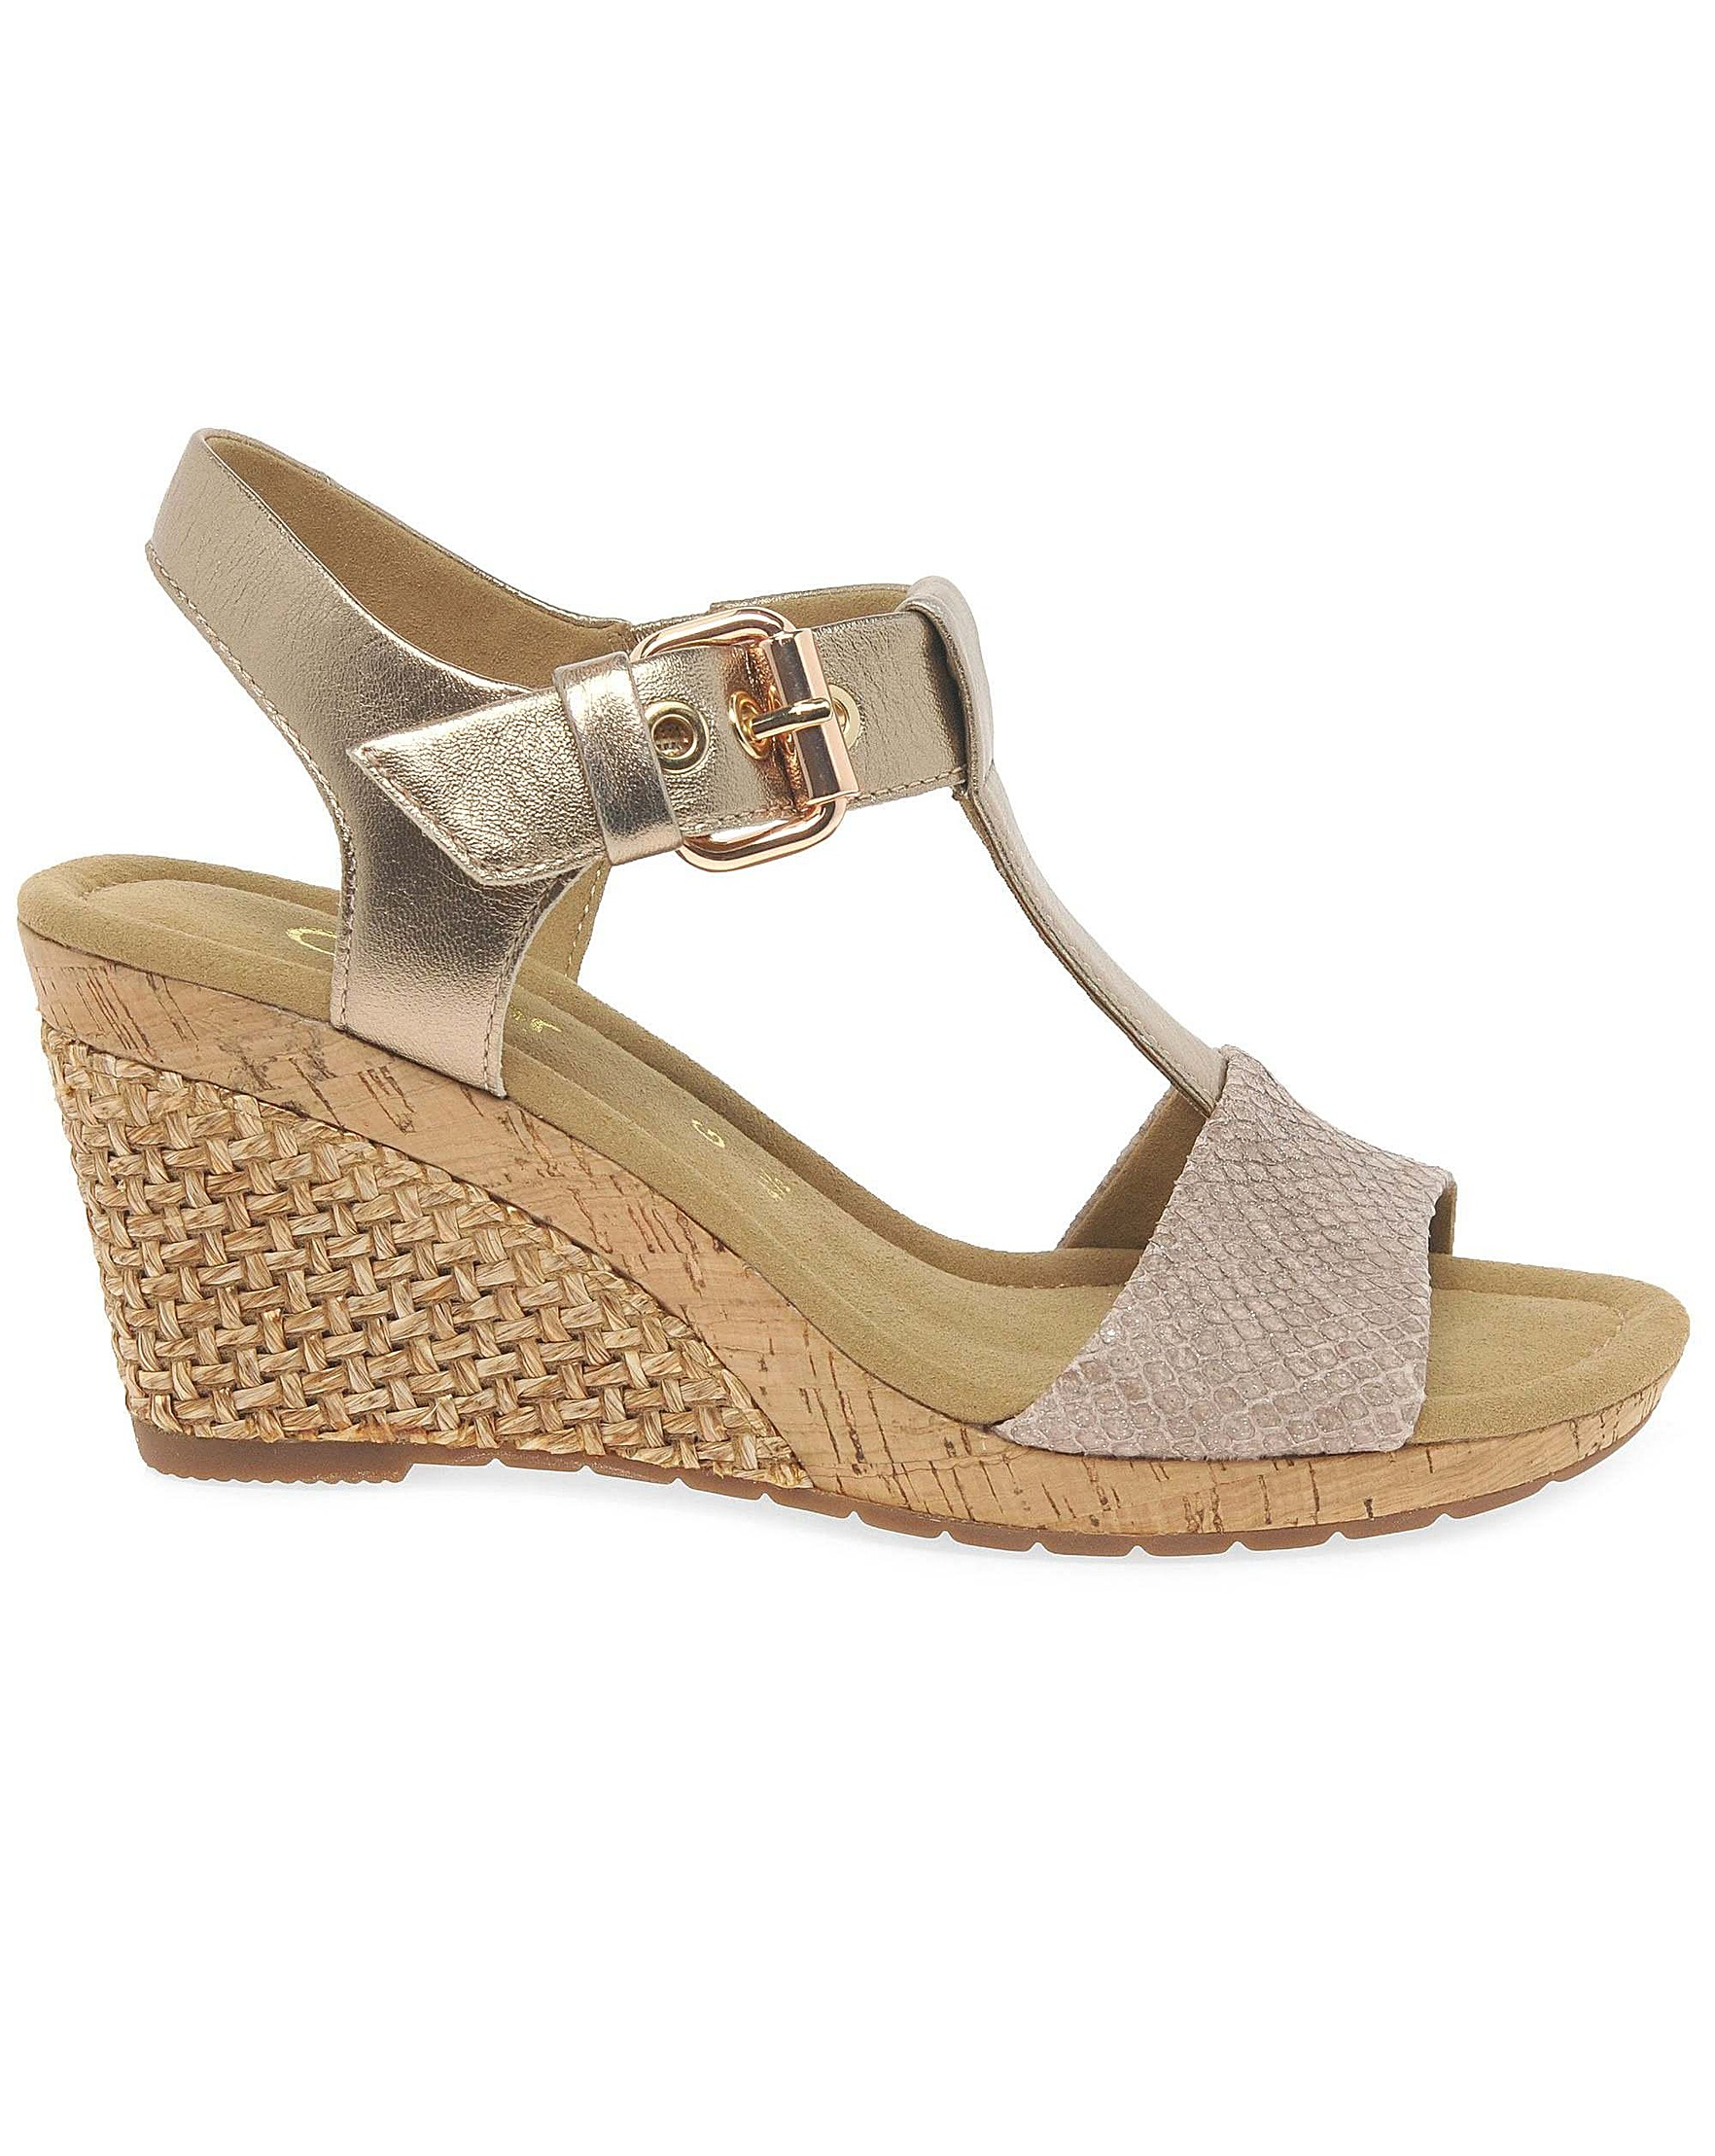 Karen Sandals Wider Gabor Fit Modern rdhsQt